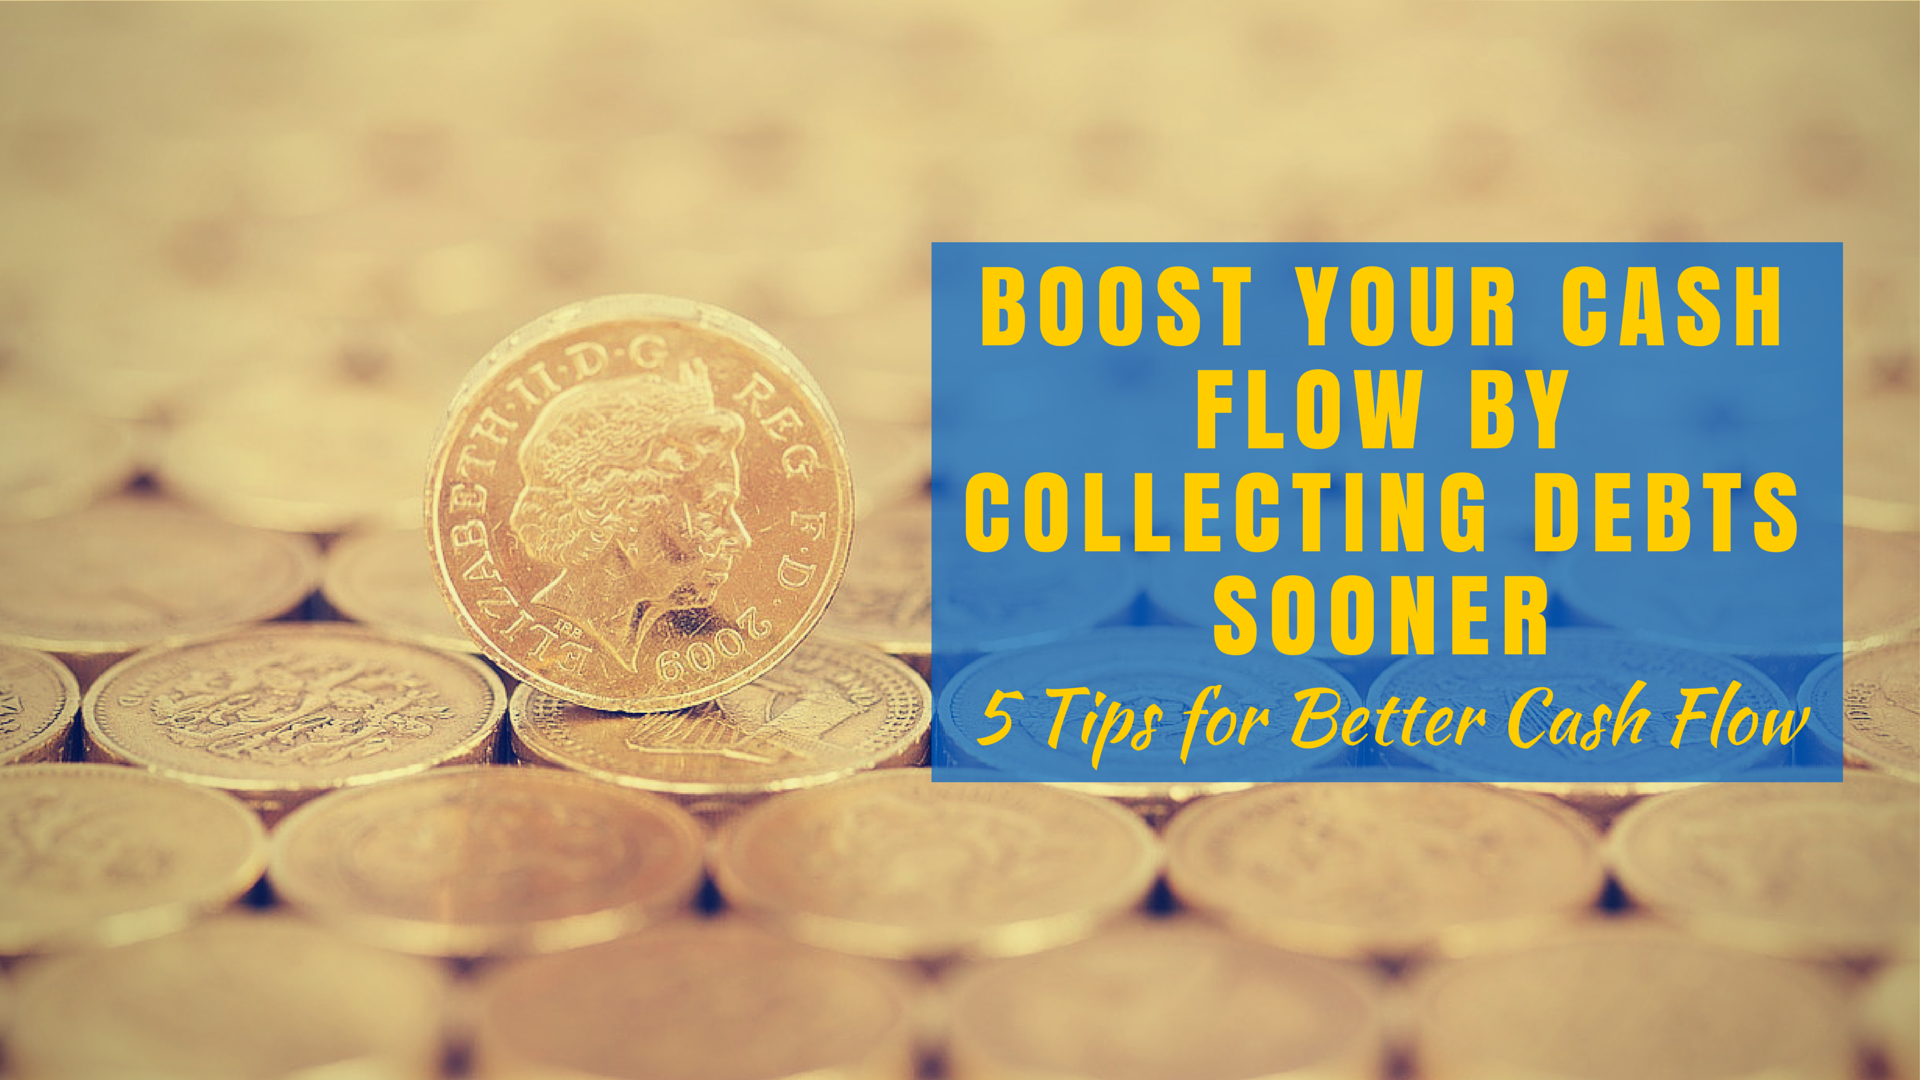 Boost Your Cash Flow by Collecting Debts Sooner Five Tips for Better Cash Flow_